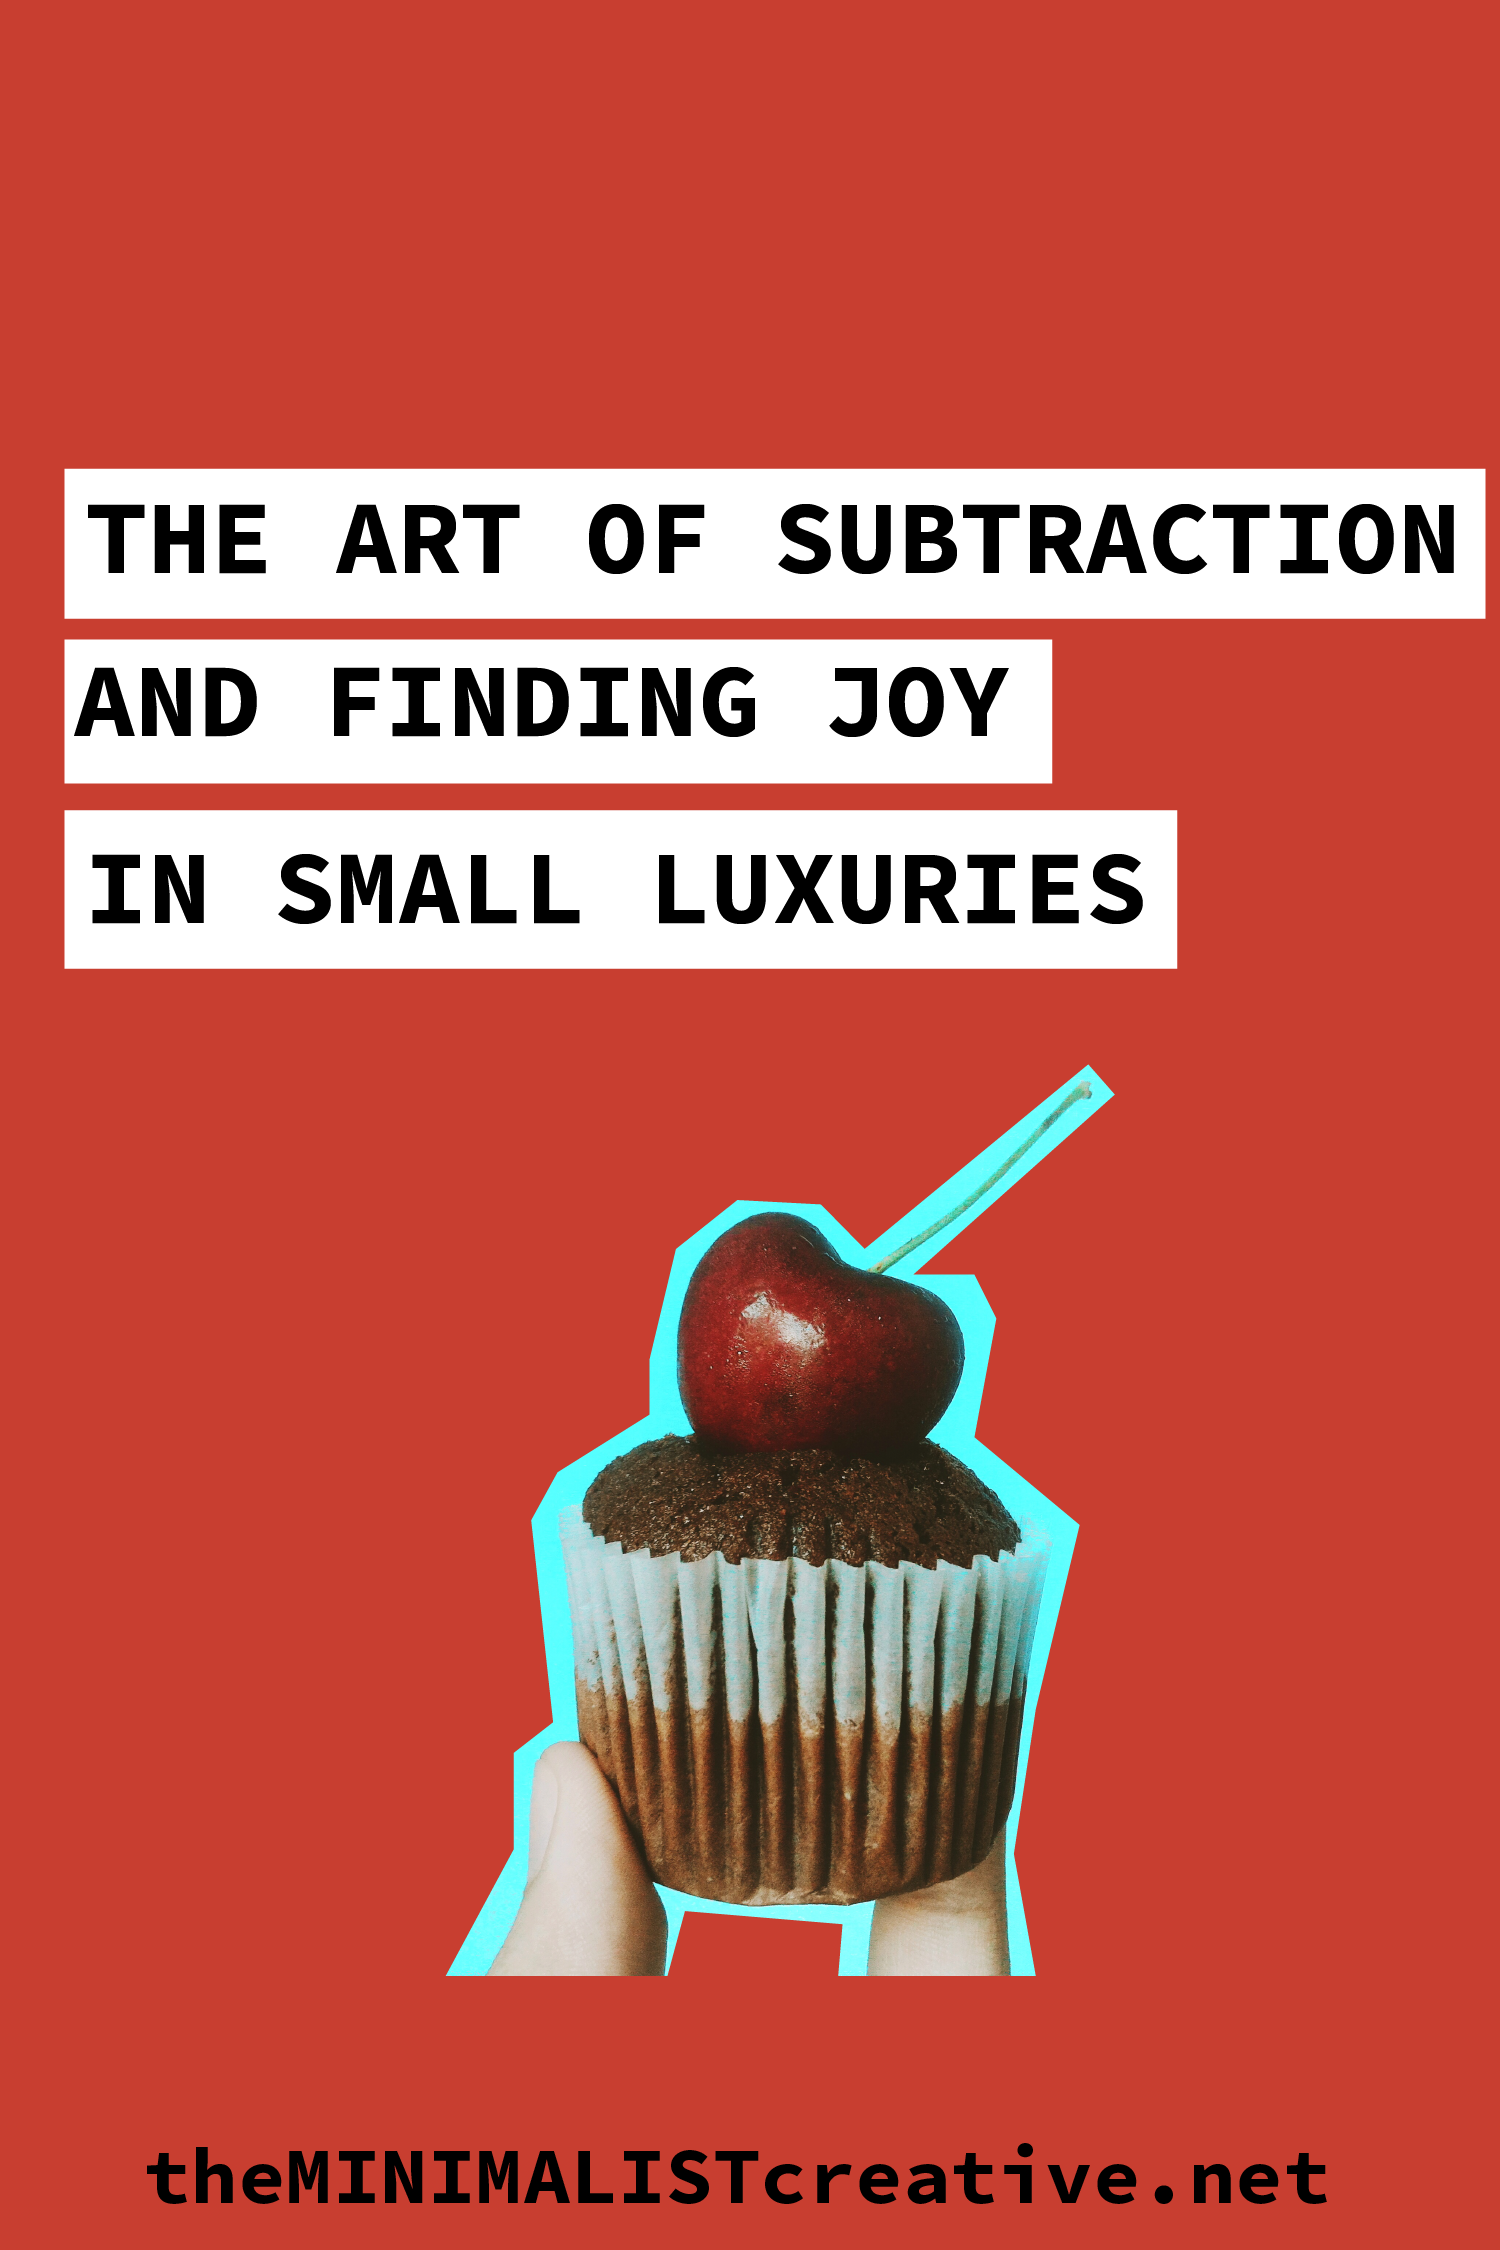 The Art of Subtraction and Finding Joy in Small Luxuries